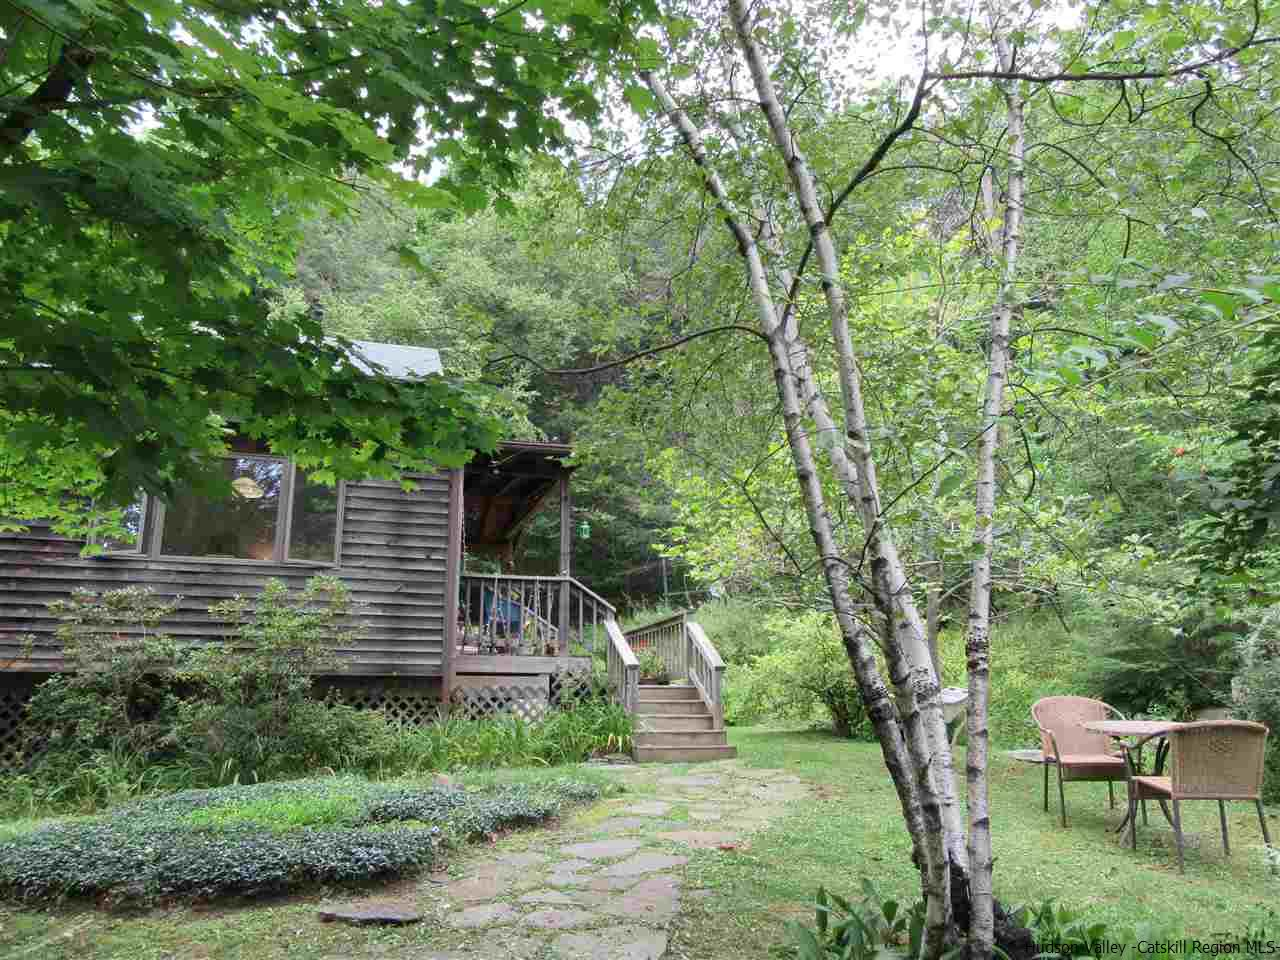 81 The Middle Way, Woodstock, NY 12498